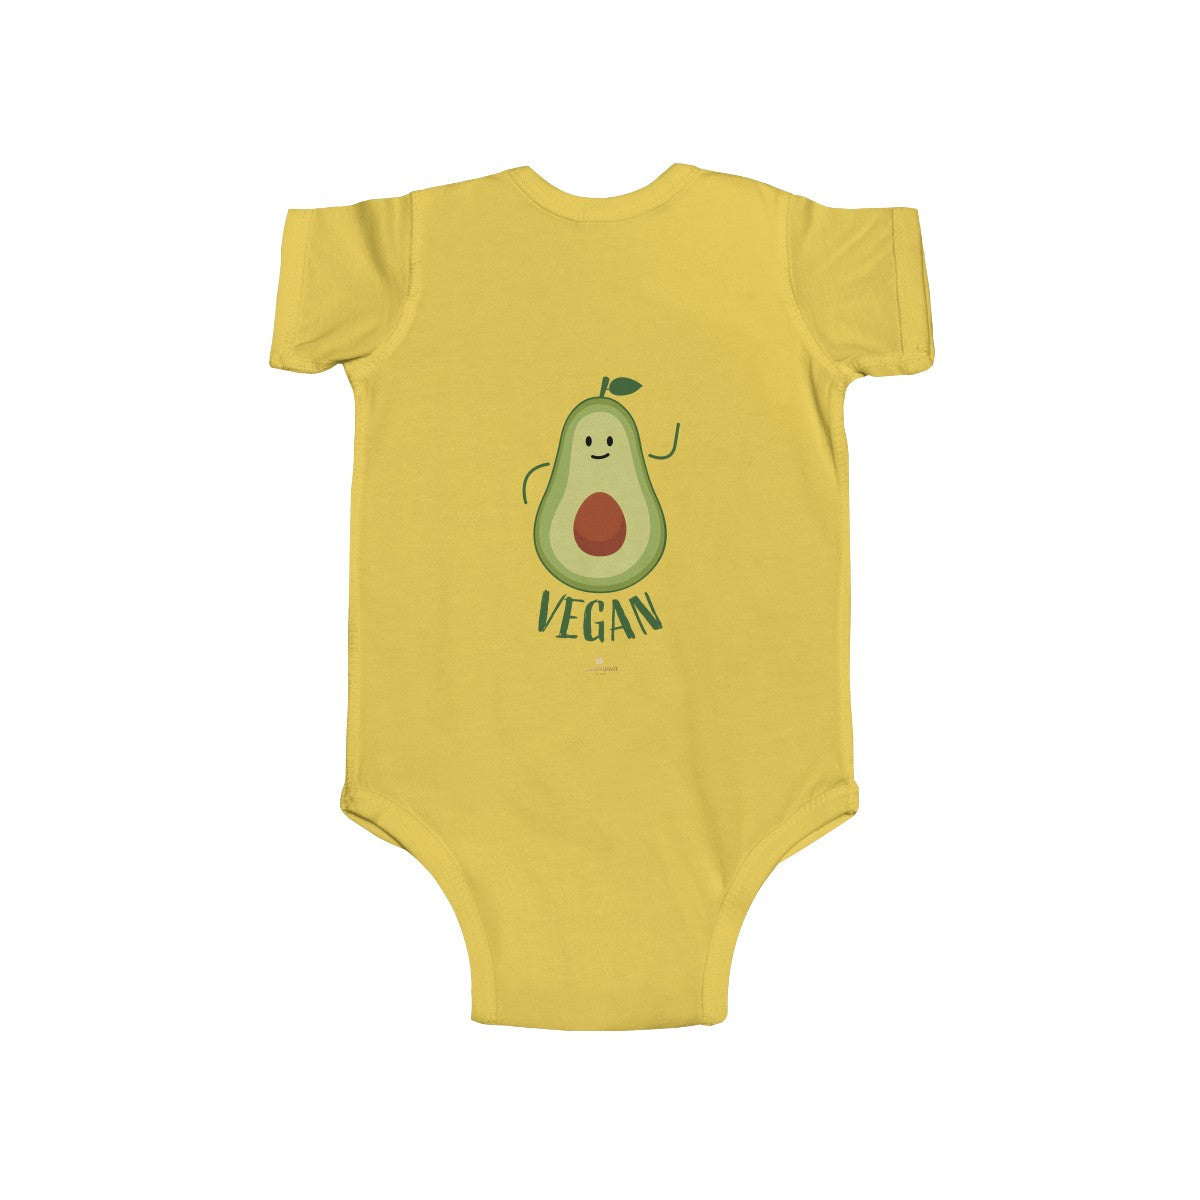 Avocado Baby Infant Fine Jersey Regular Fit Unisex Cute Cotton Bodysuit - Made in UK - Heidi Kimura Art LLC